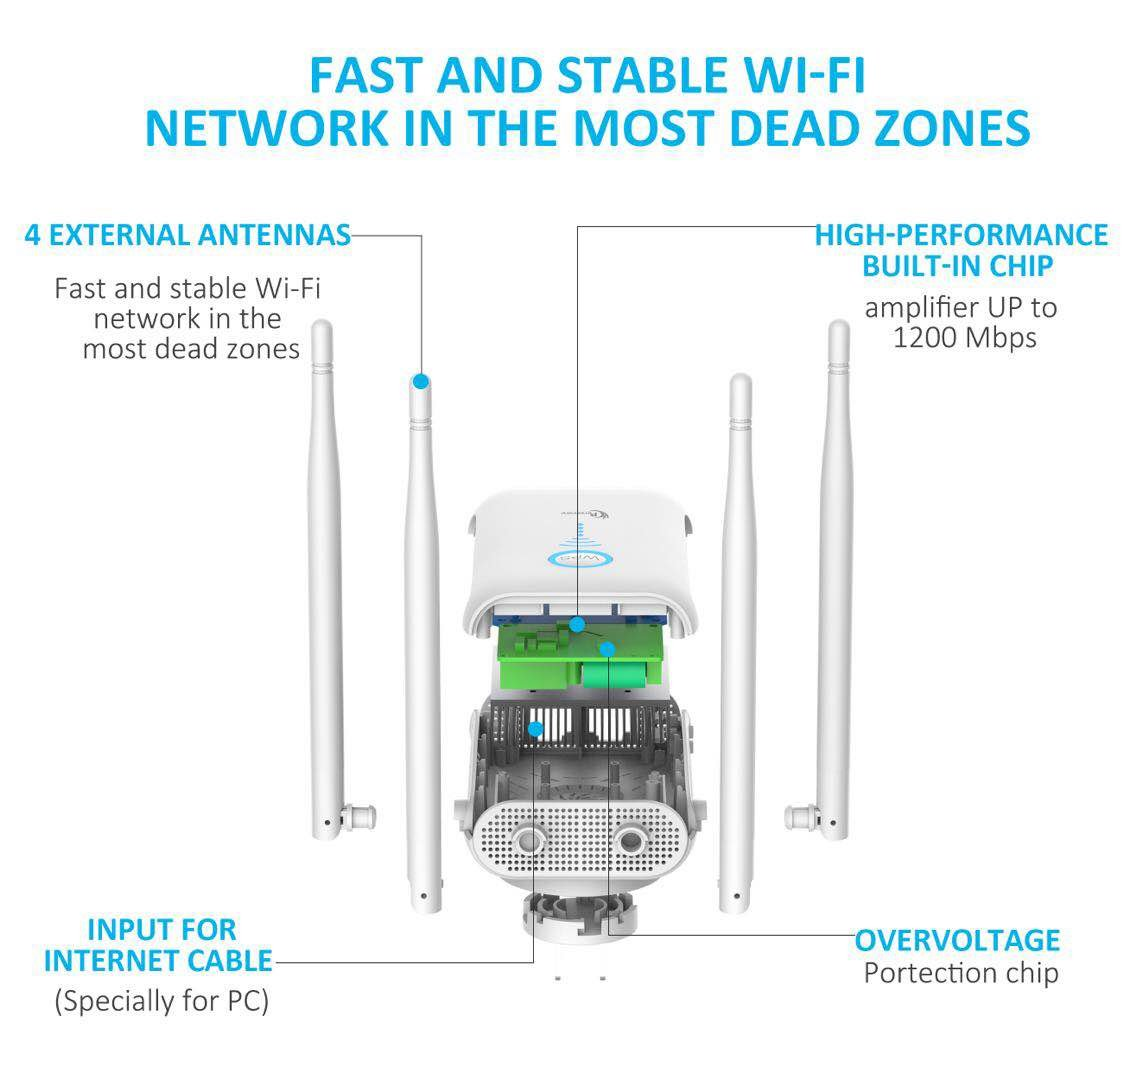 Persevere WiFi Range Extender, 1200Mbps Wifi Booster Signal Extenders Wi-Fi Repeater with 4 External Antennas, AC1200 WiFi Signal Amplifier Dual External Band Available 2.4GHz and 5GHz by Persevere (Image #4)